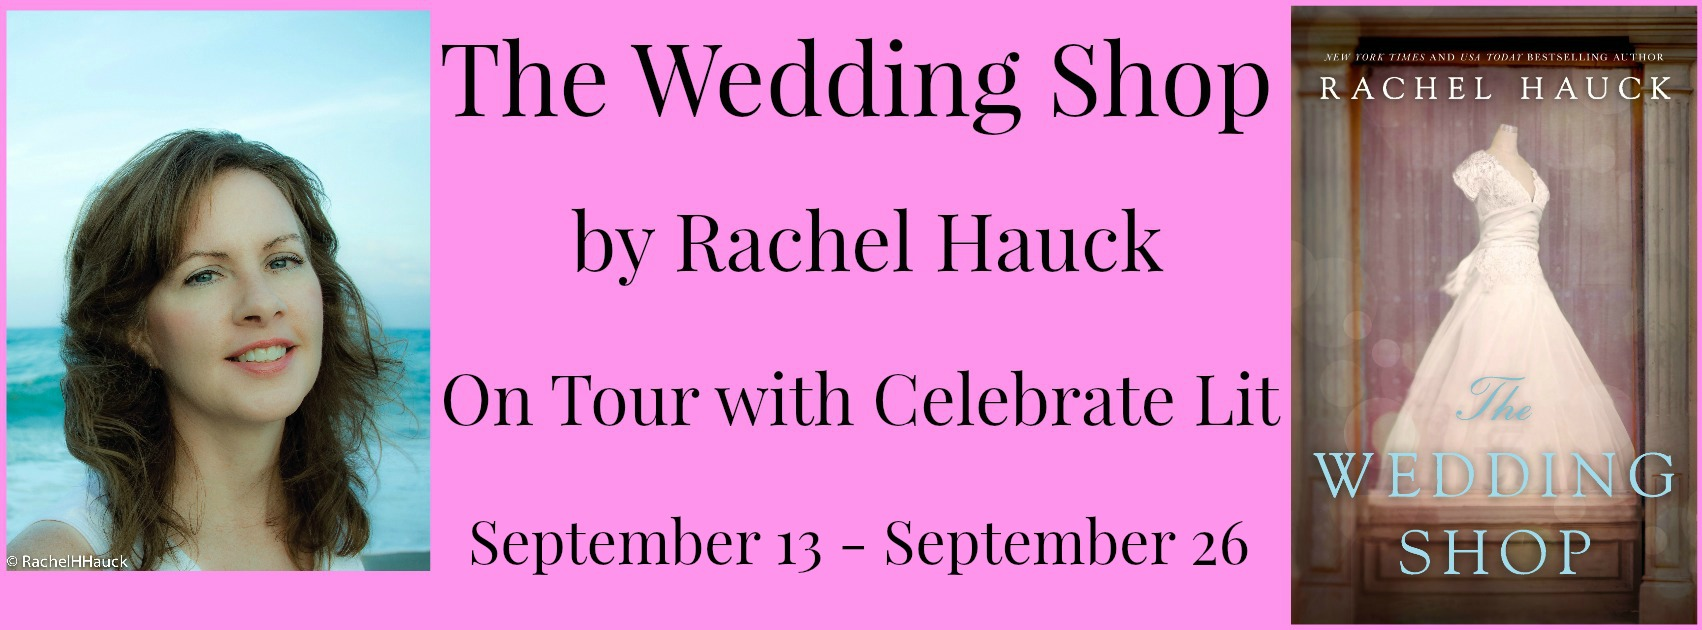 The Wedding Shop Banner